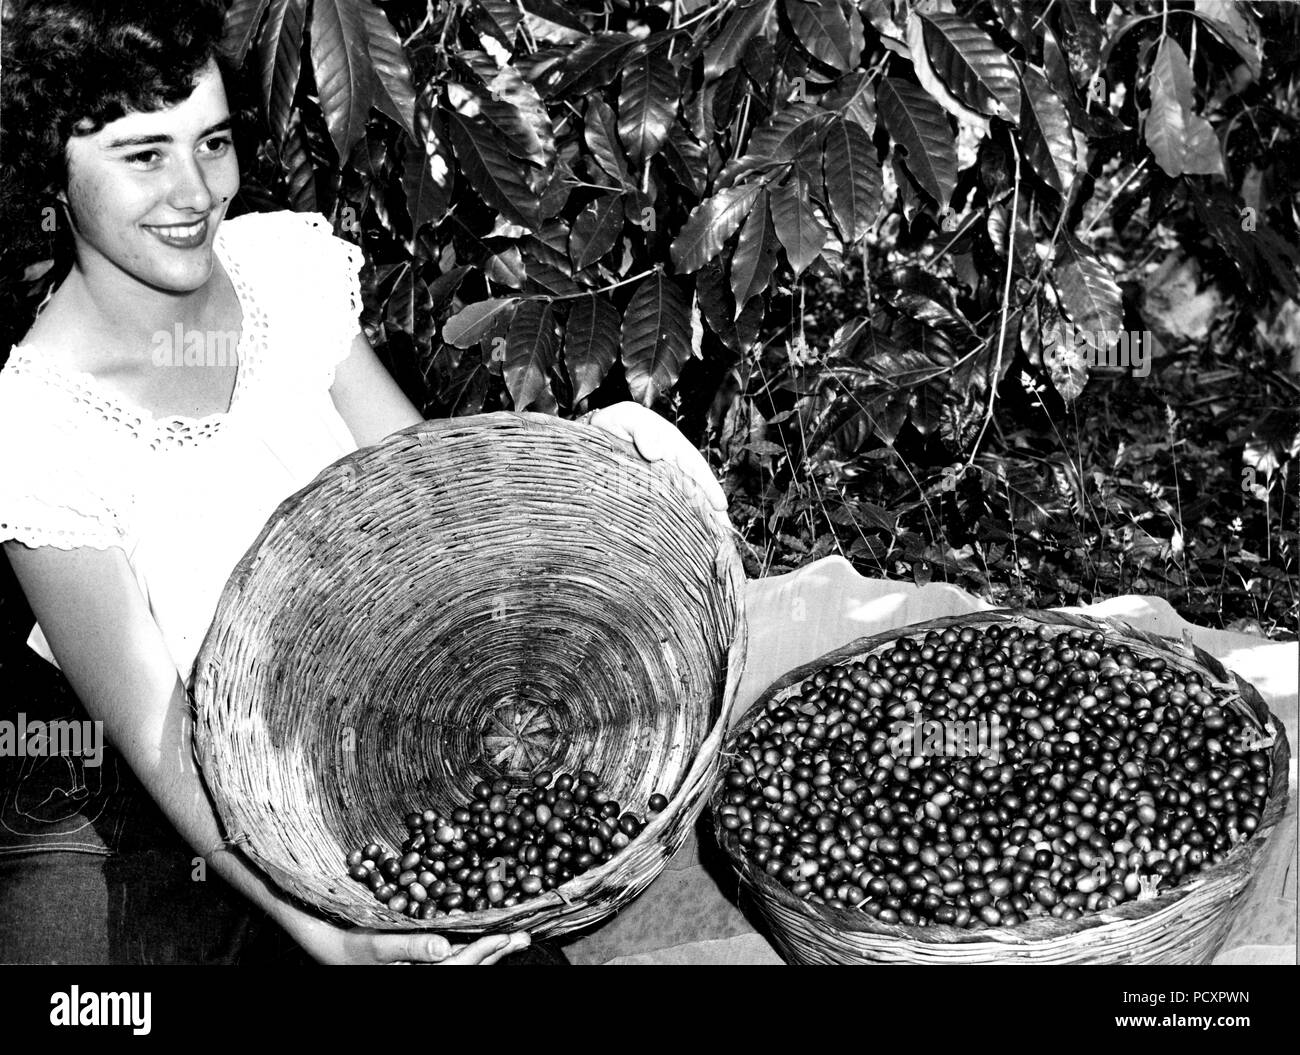 Coffee harvest. The pickers select the ripe red cherries leaving the green, immature fruit on the tree for later harvest. Guatemala. 1949 - Stock Image